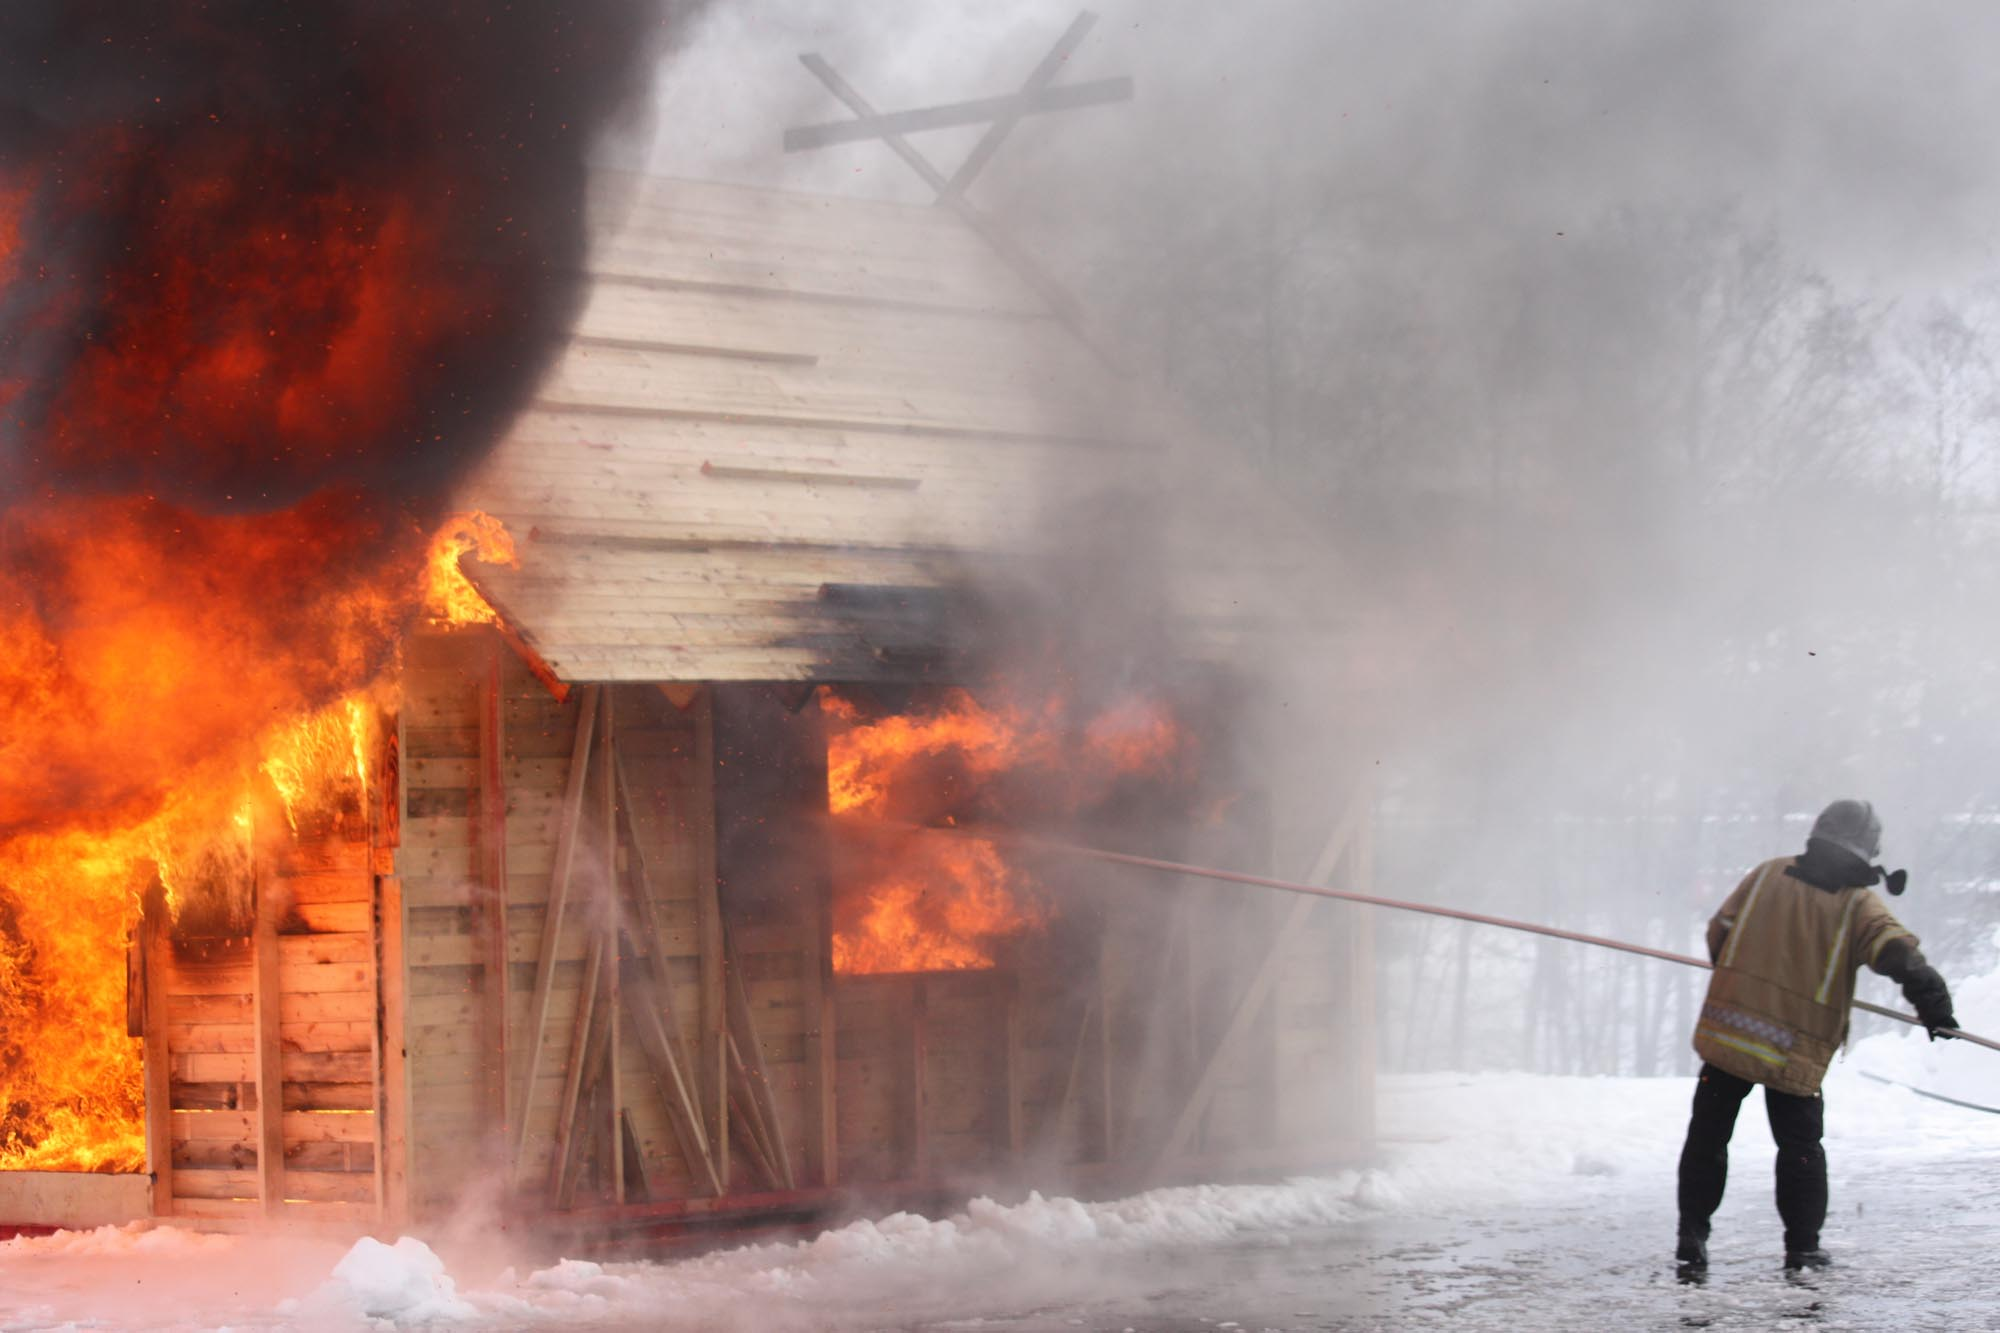 Firelance being used to put out a fire